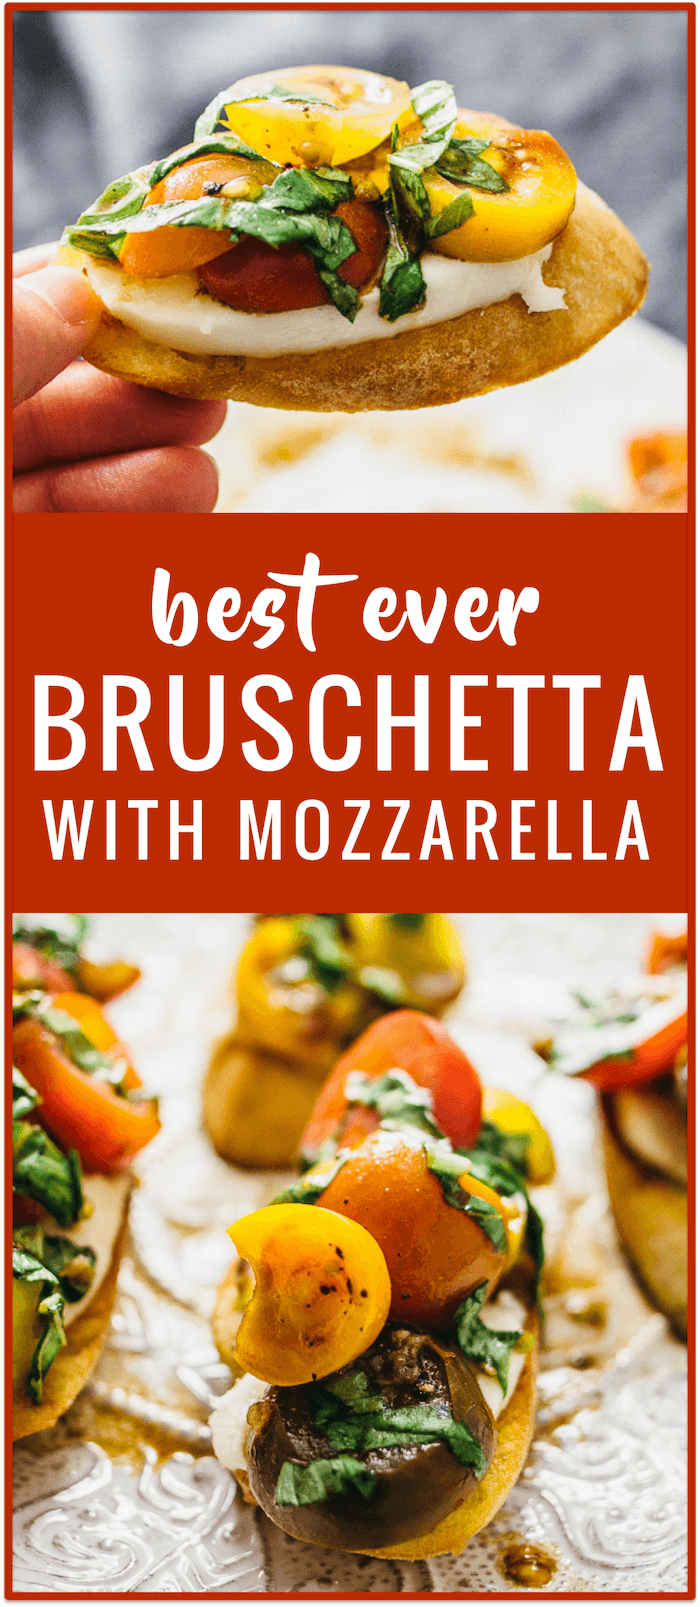 Favorite bruschetta with mozzarella appetizer party recipe (vegetarian) - This is my favorite way of making bruschetta: hot buttery skillet-toasted baguette slices with cold tomatoes, basil, garlic, mozzarella cheese, and balsamic vinegar.